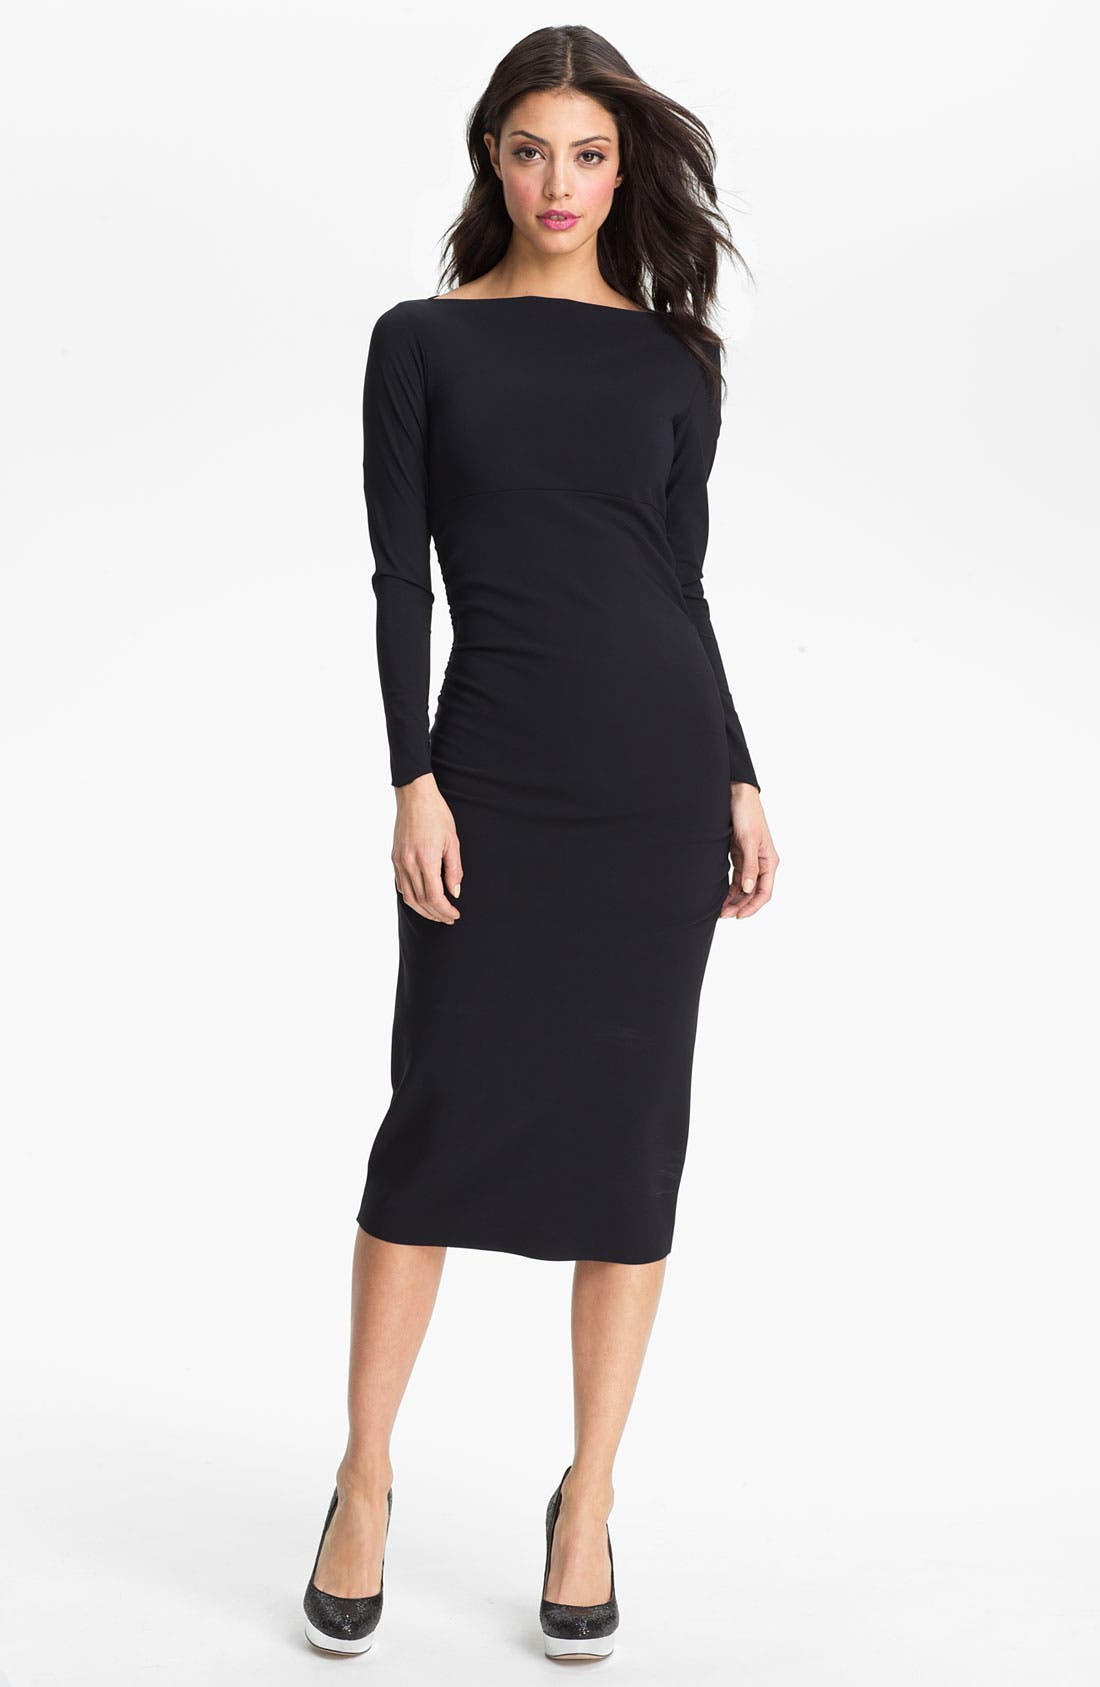 Main Image - La Petite Robe by Chiara Boni 'Coschita' Jersey Sheath Dress